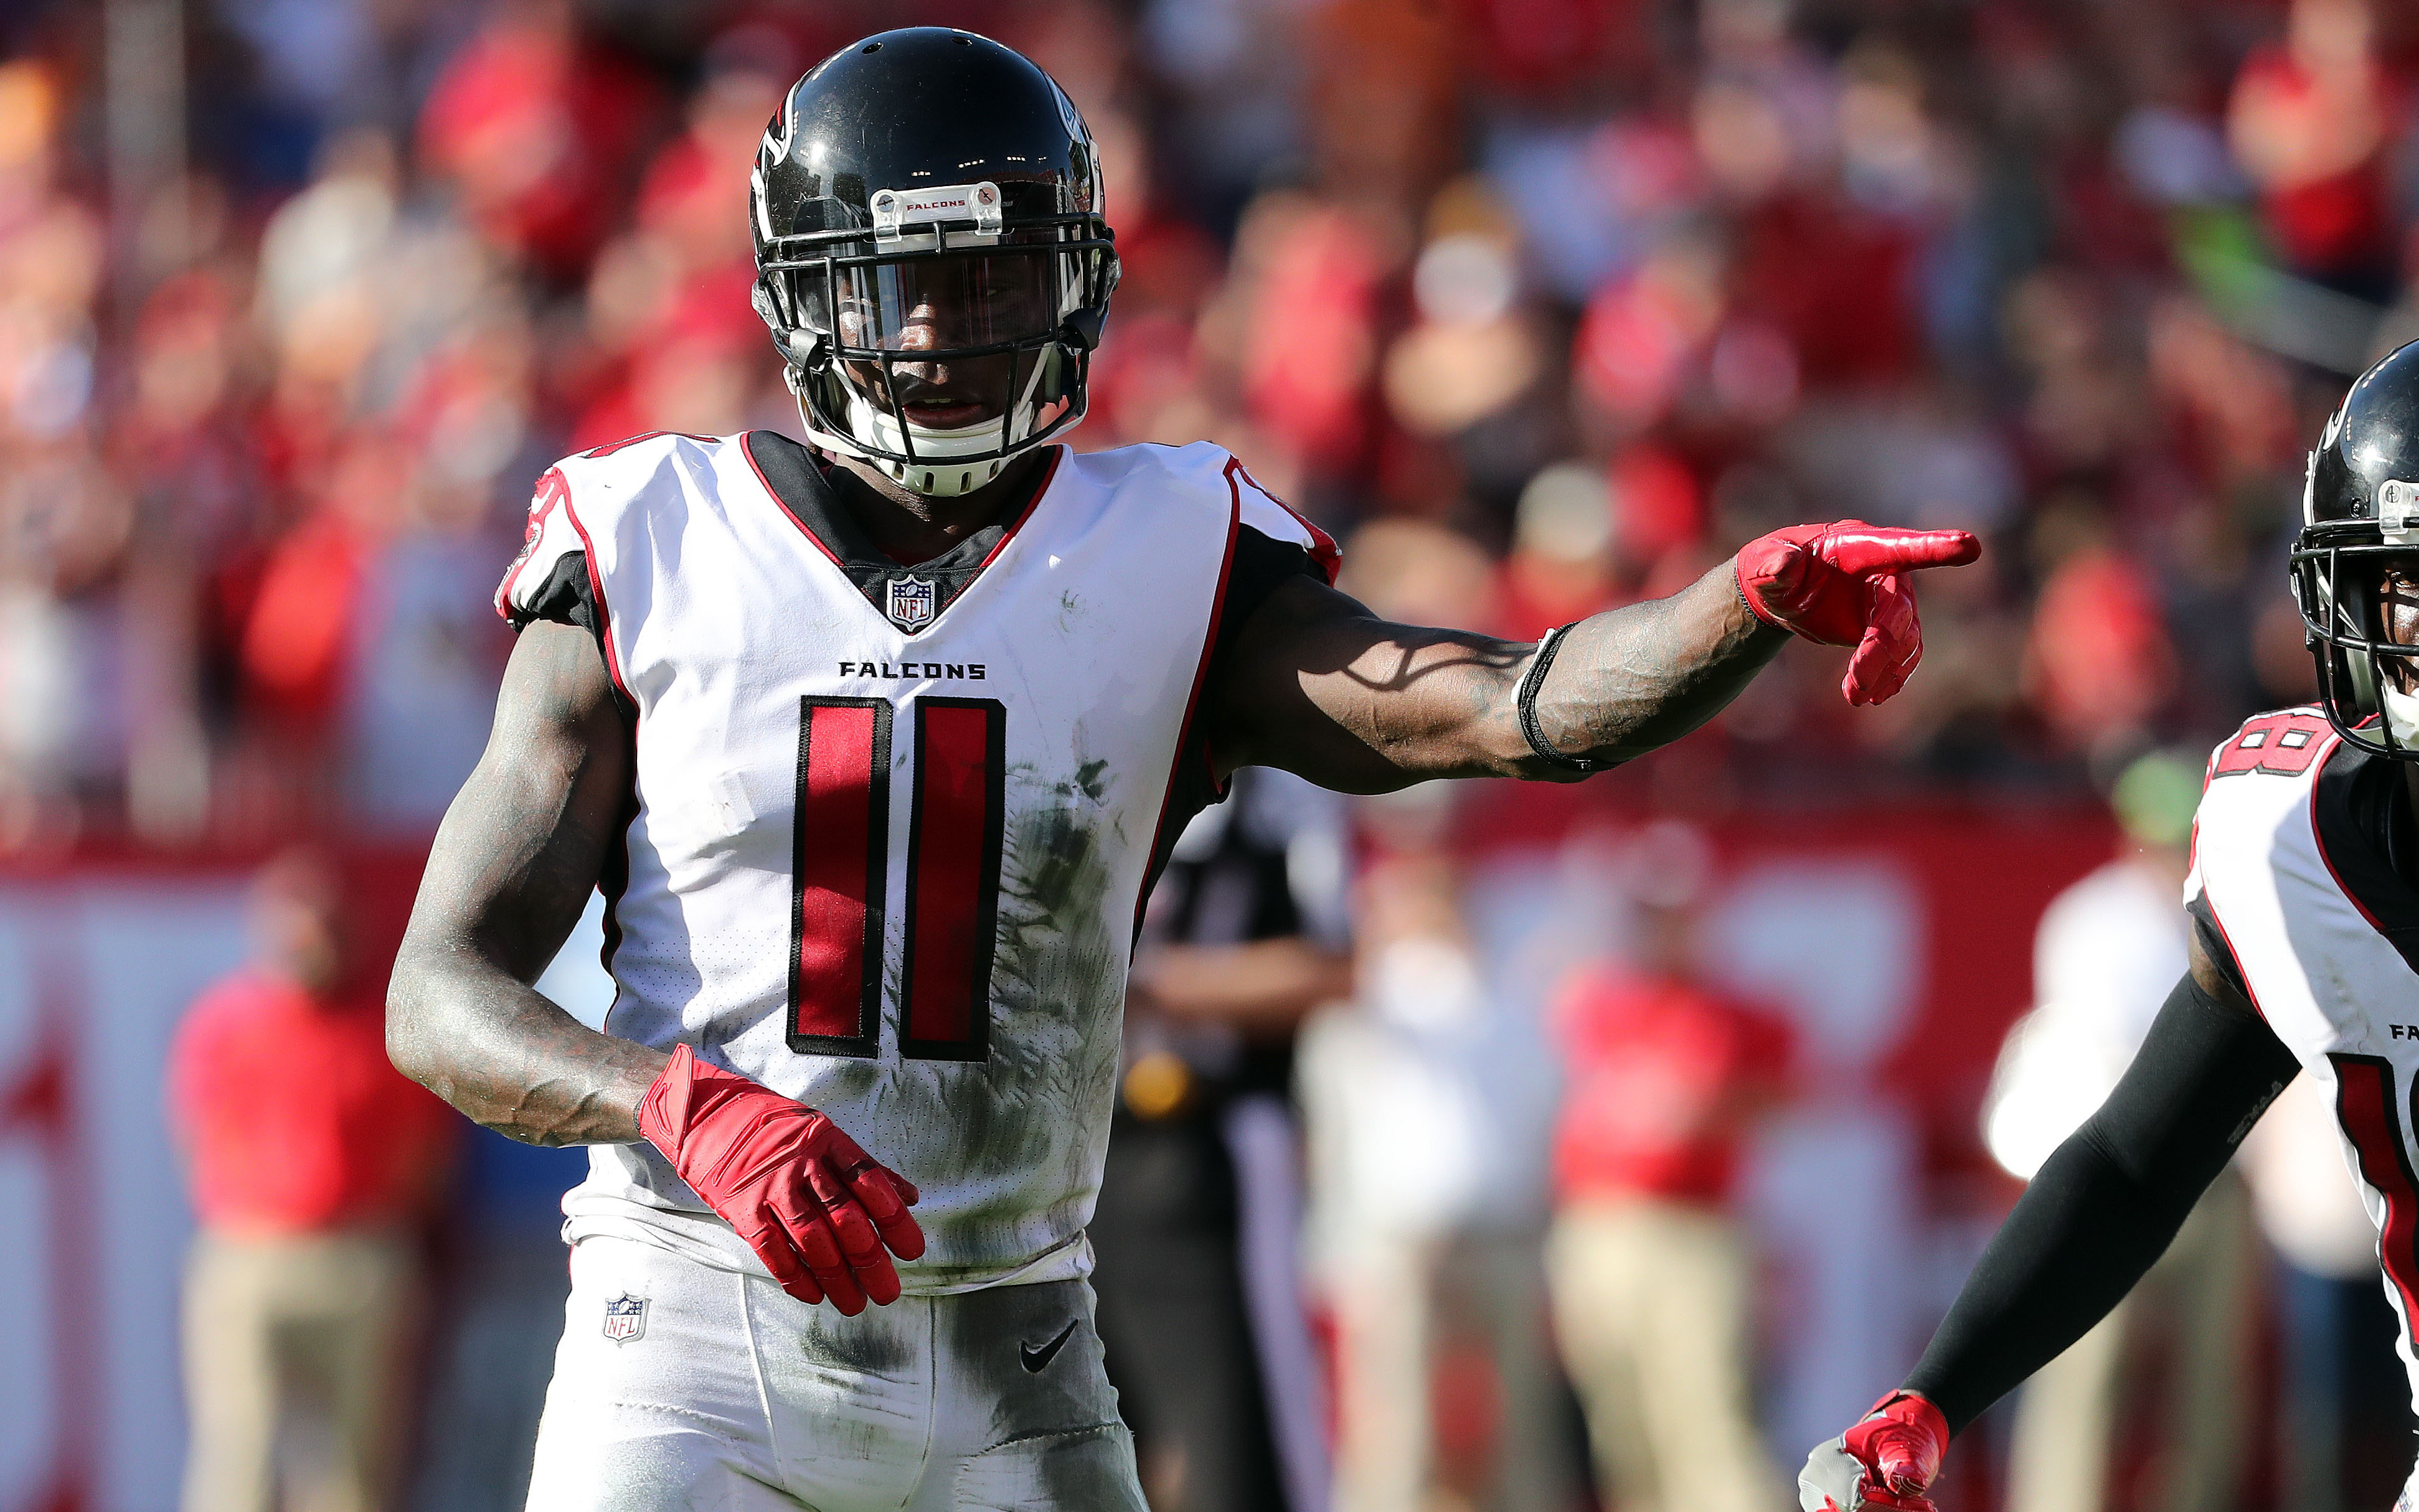 Year-to-year repeatability among the top fantasy wide receivers